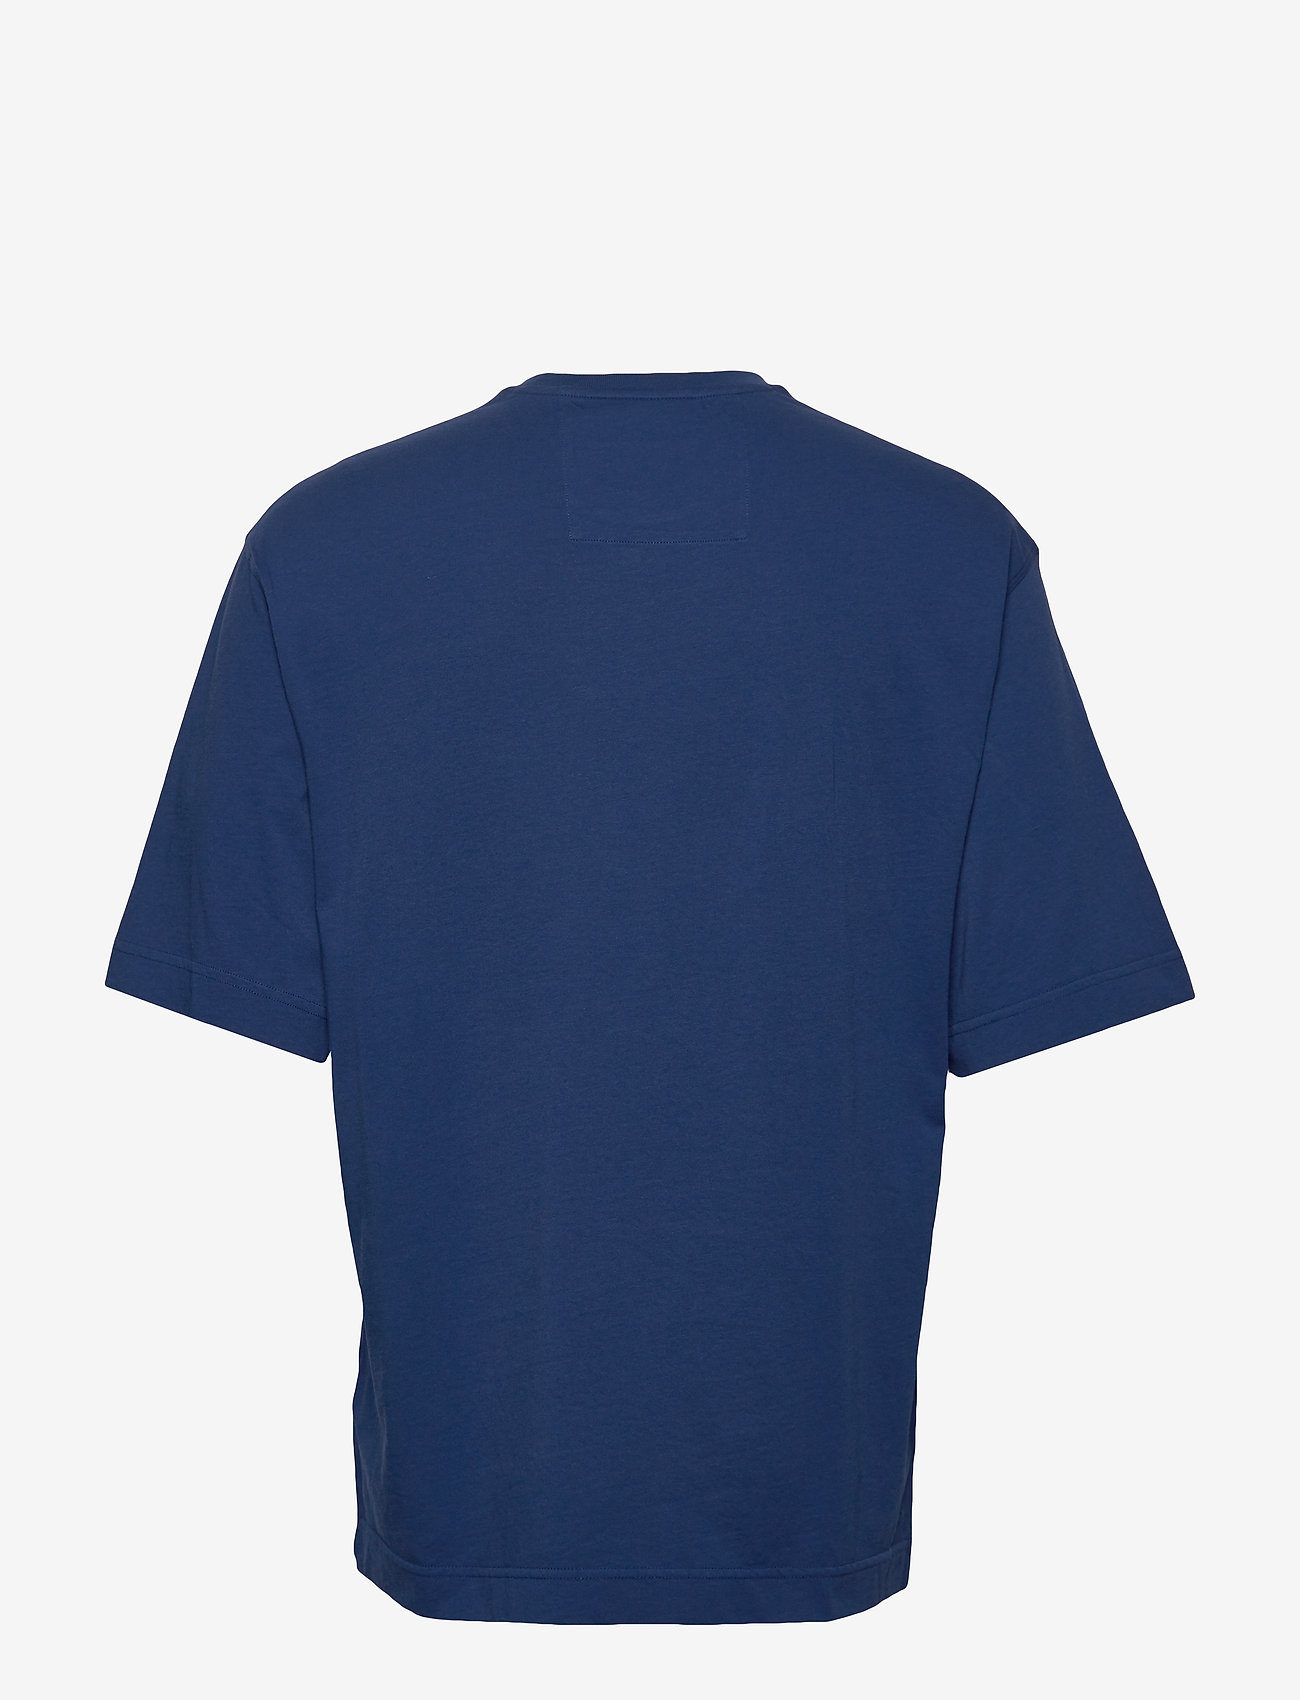 Peak Performance M Combined Tee - T-shirts Cimmerian Blue